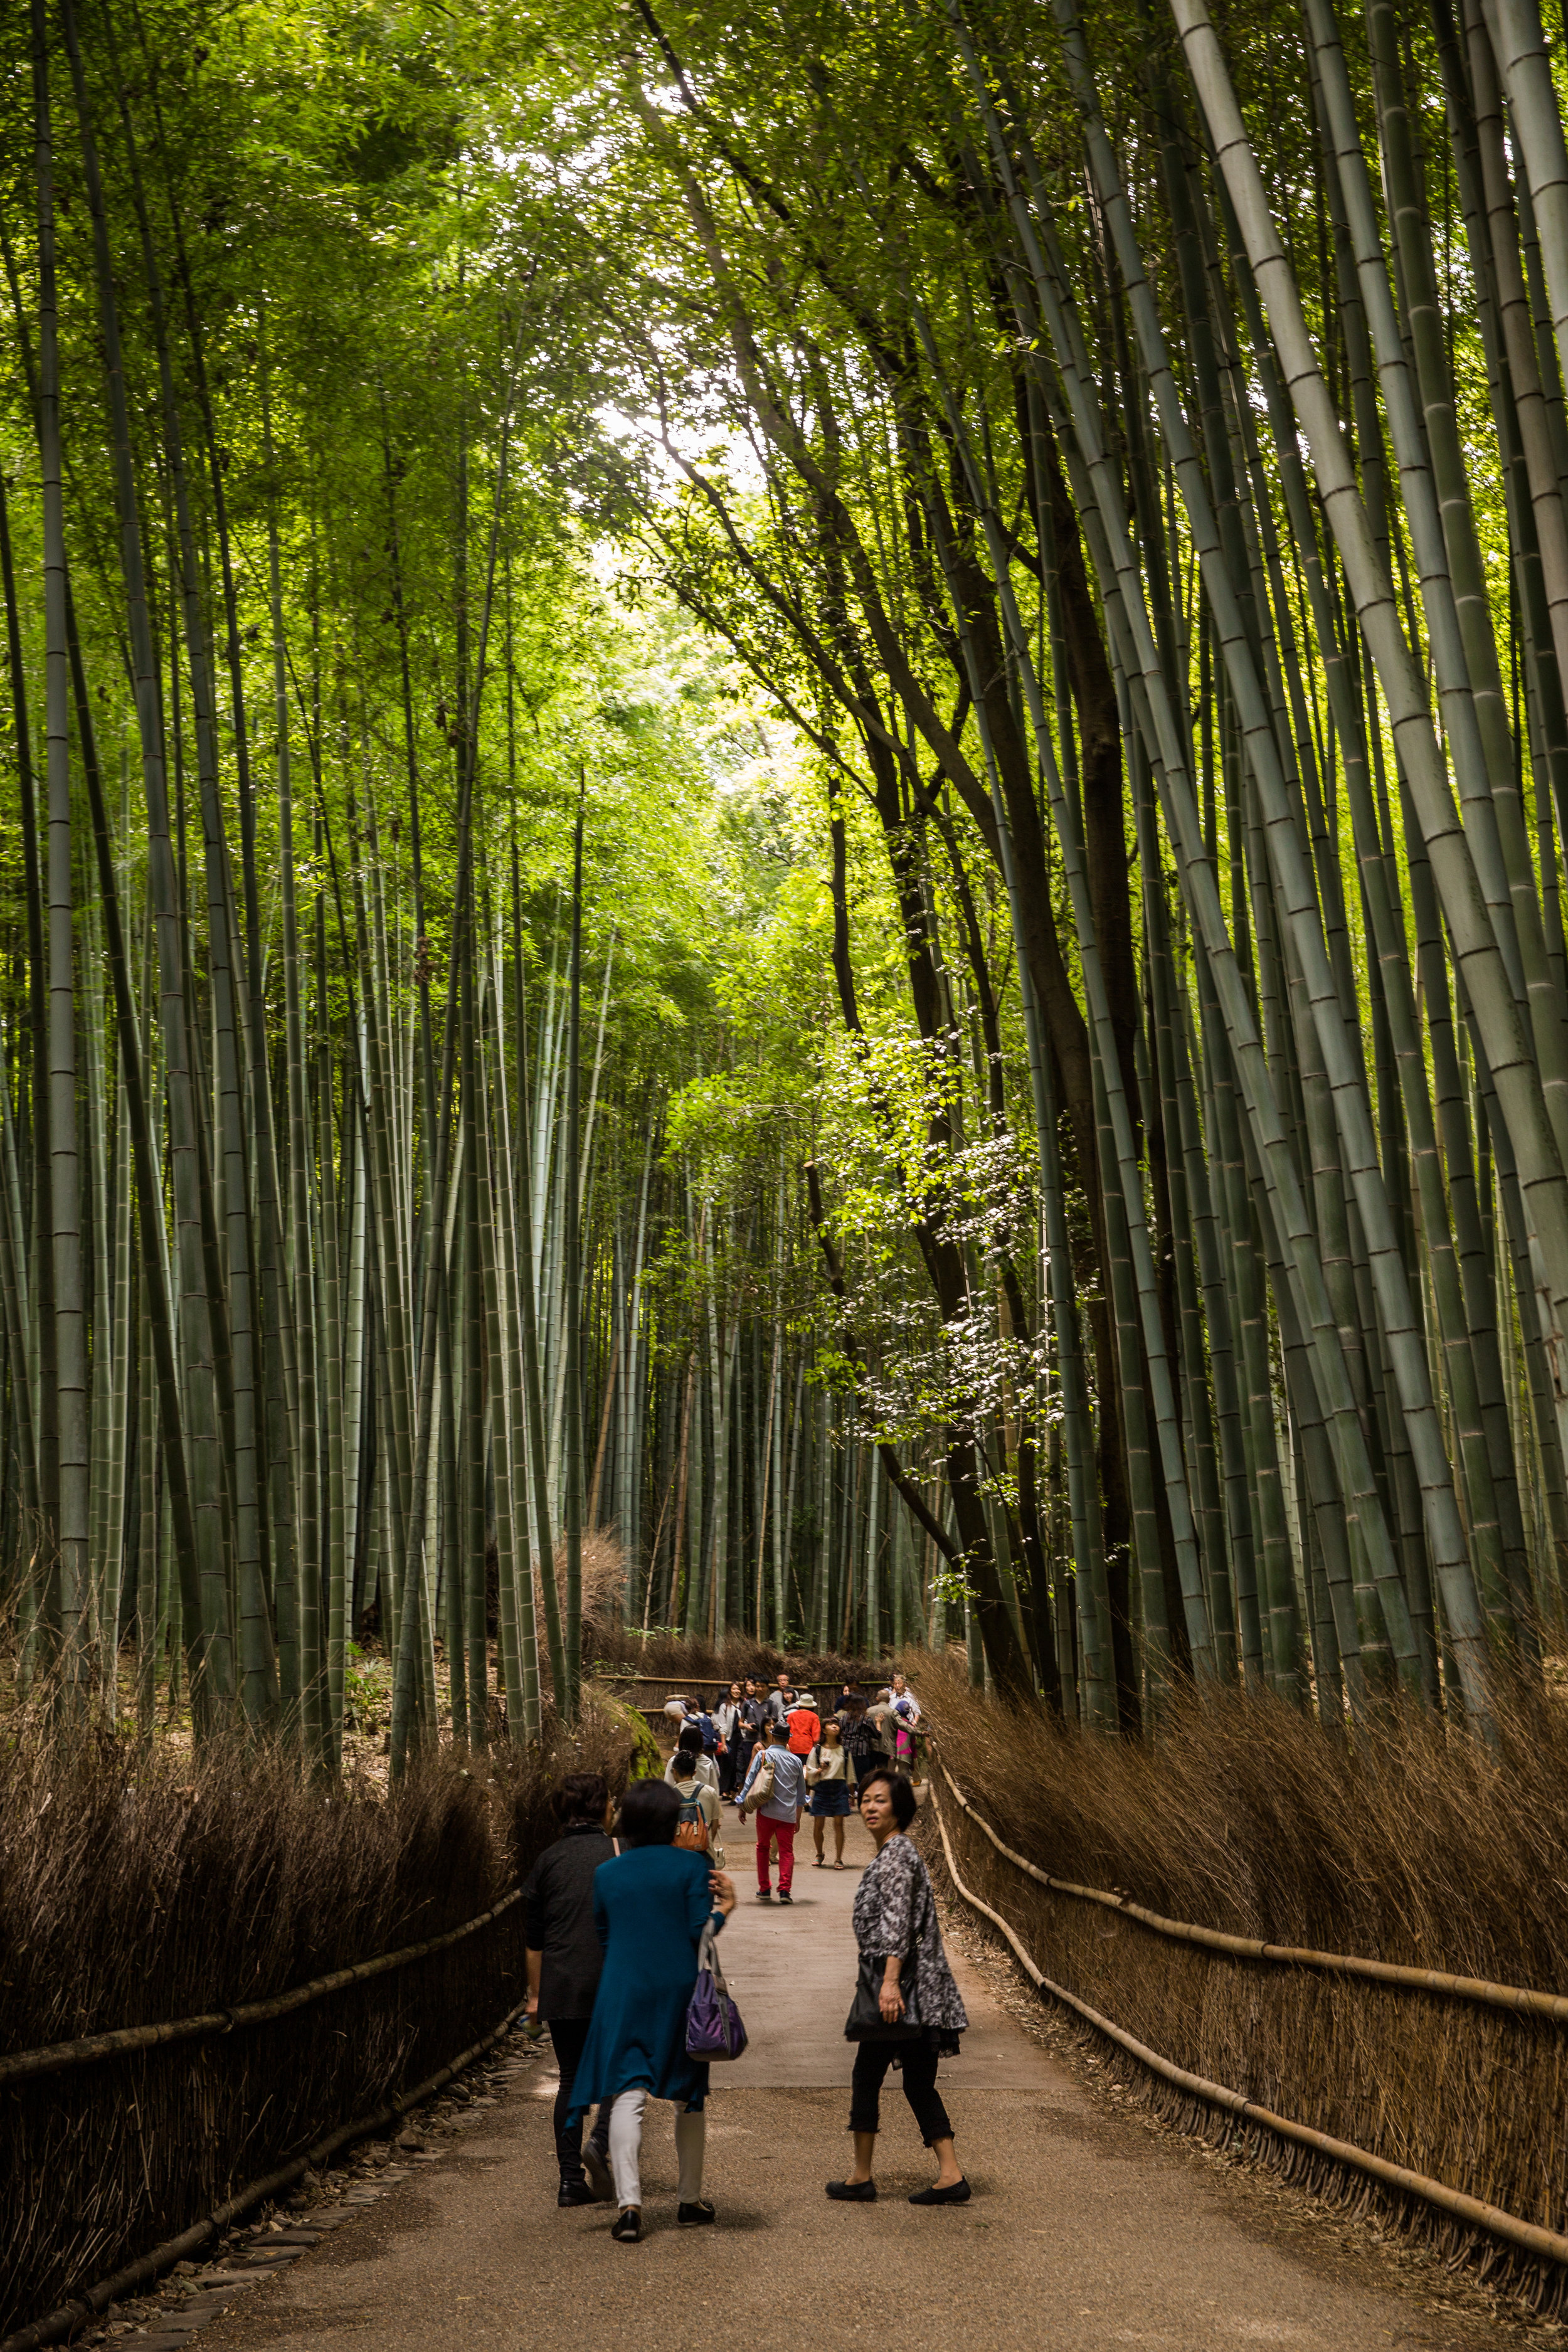 I disturb a discussion with my camera clicks as we enter the Arashiyama Bamboo Grove. Perhaps Canon is reading and wants me to go full frame mirrorless as an ambassador..